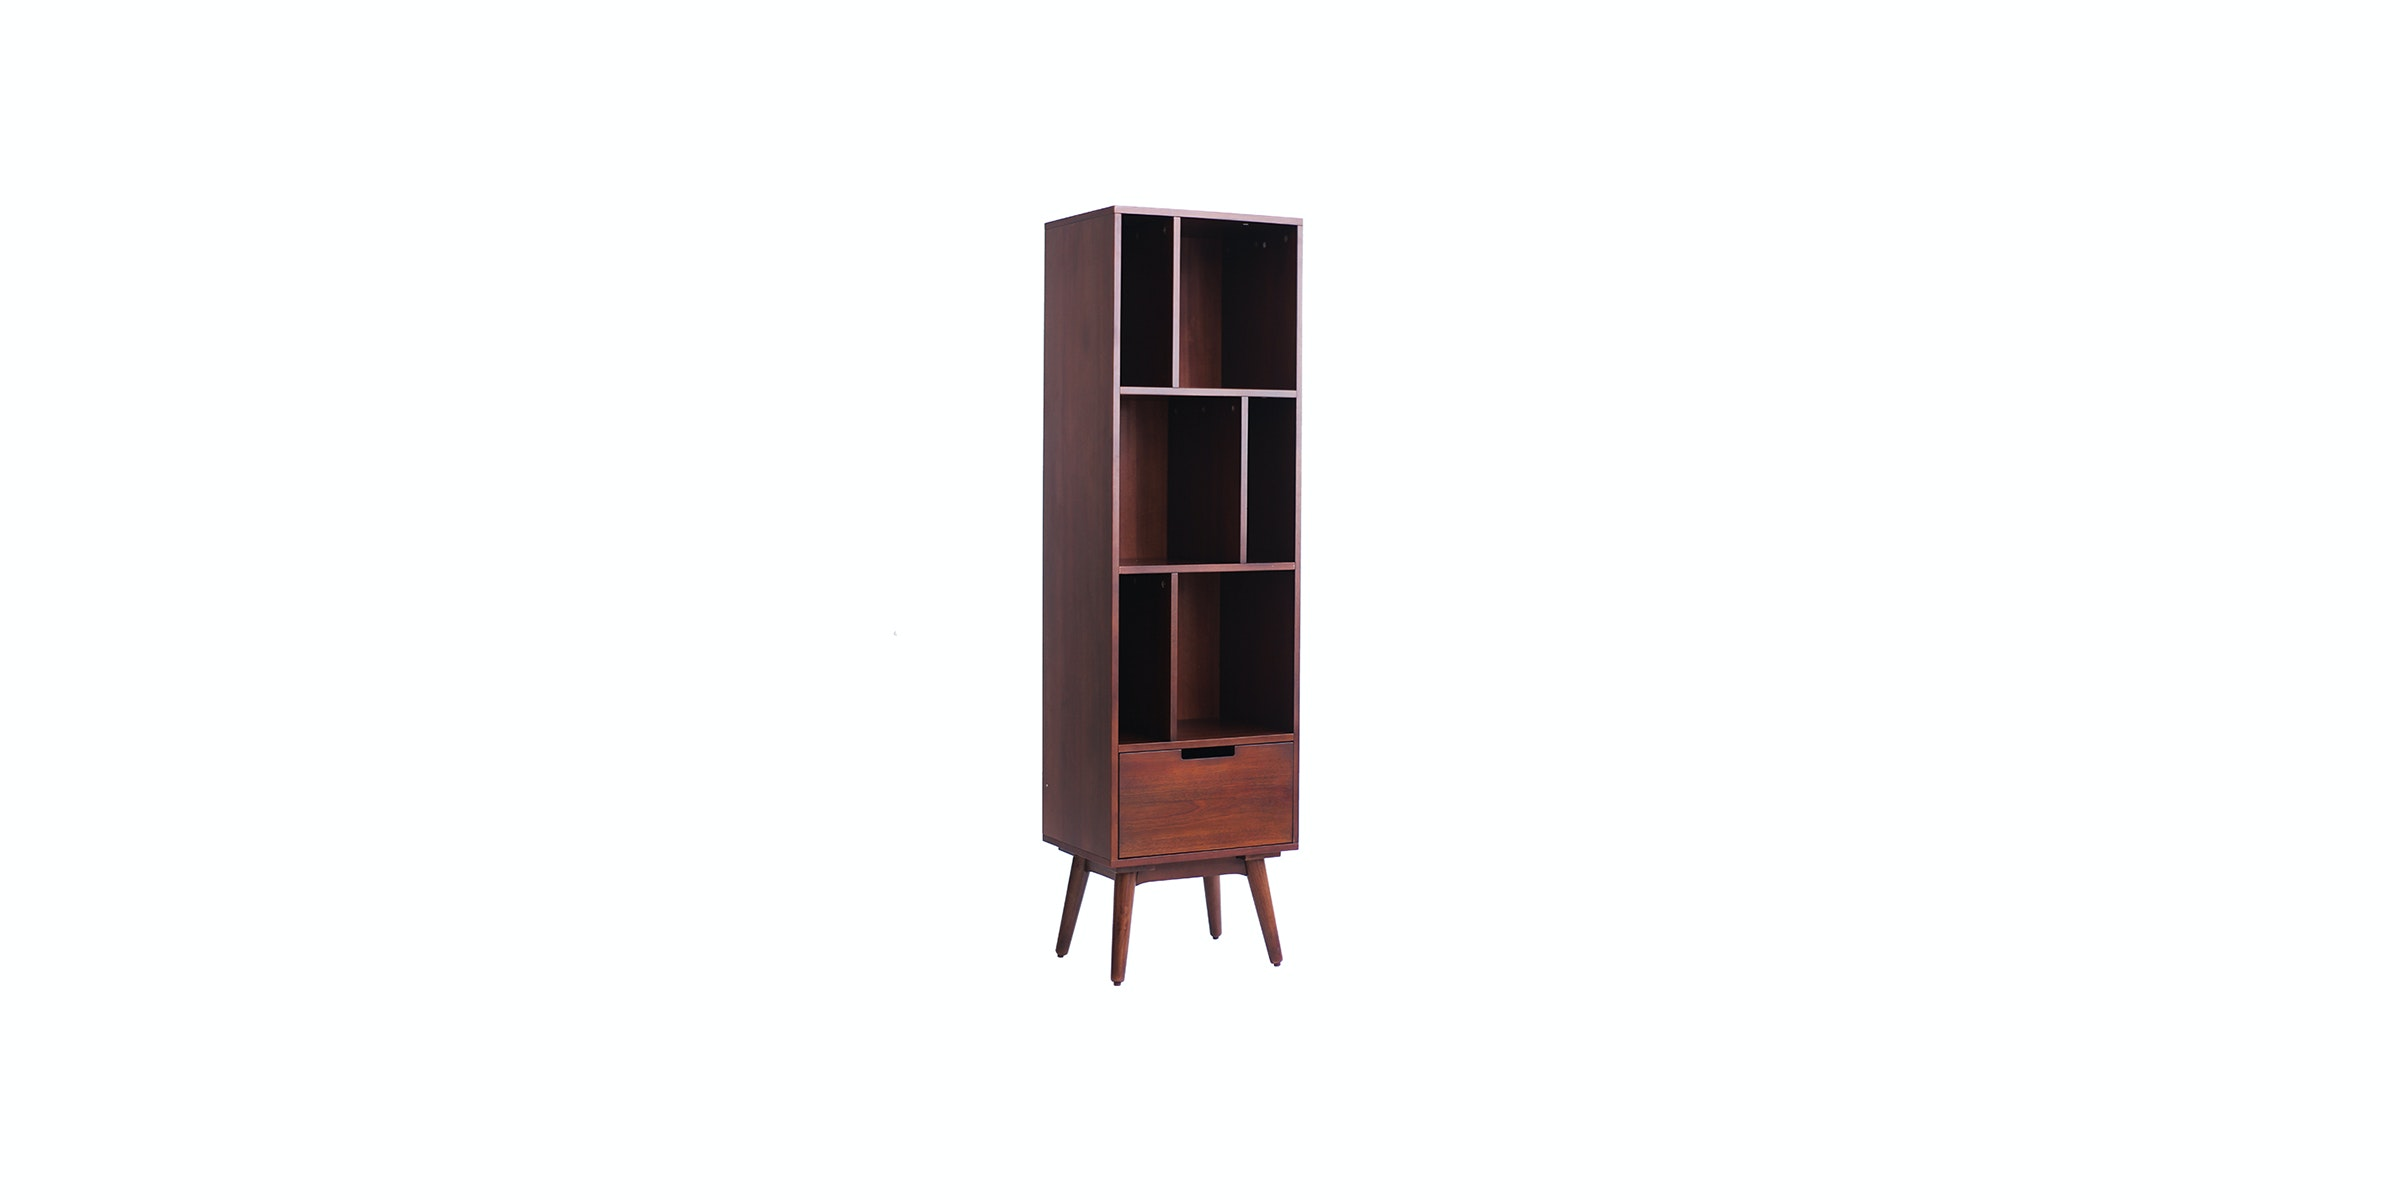 Thema Home Bookcase Rondane Skandi Walnut Integ